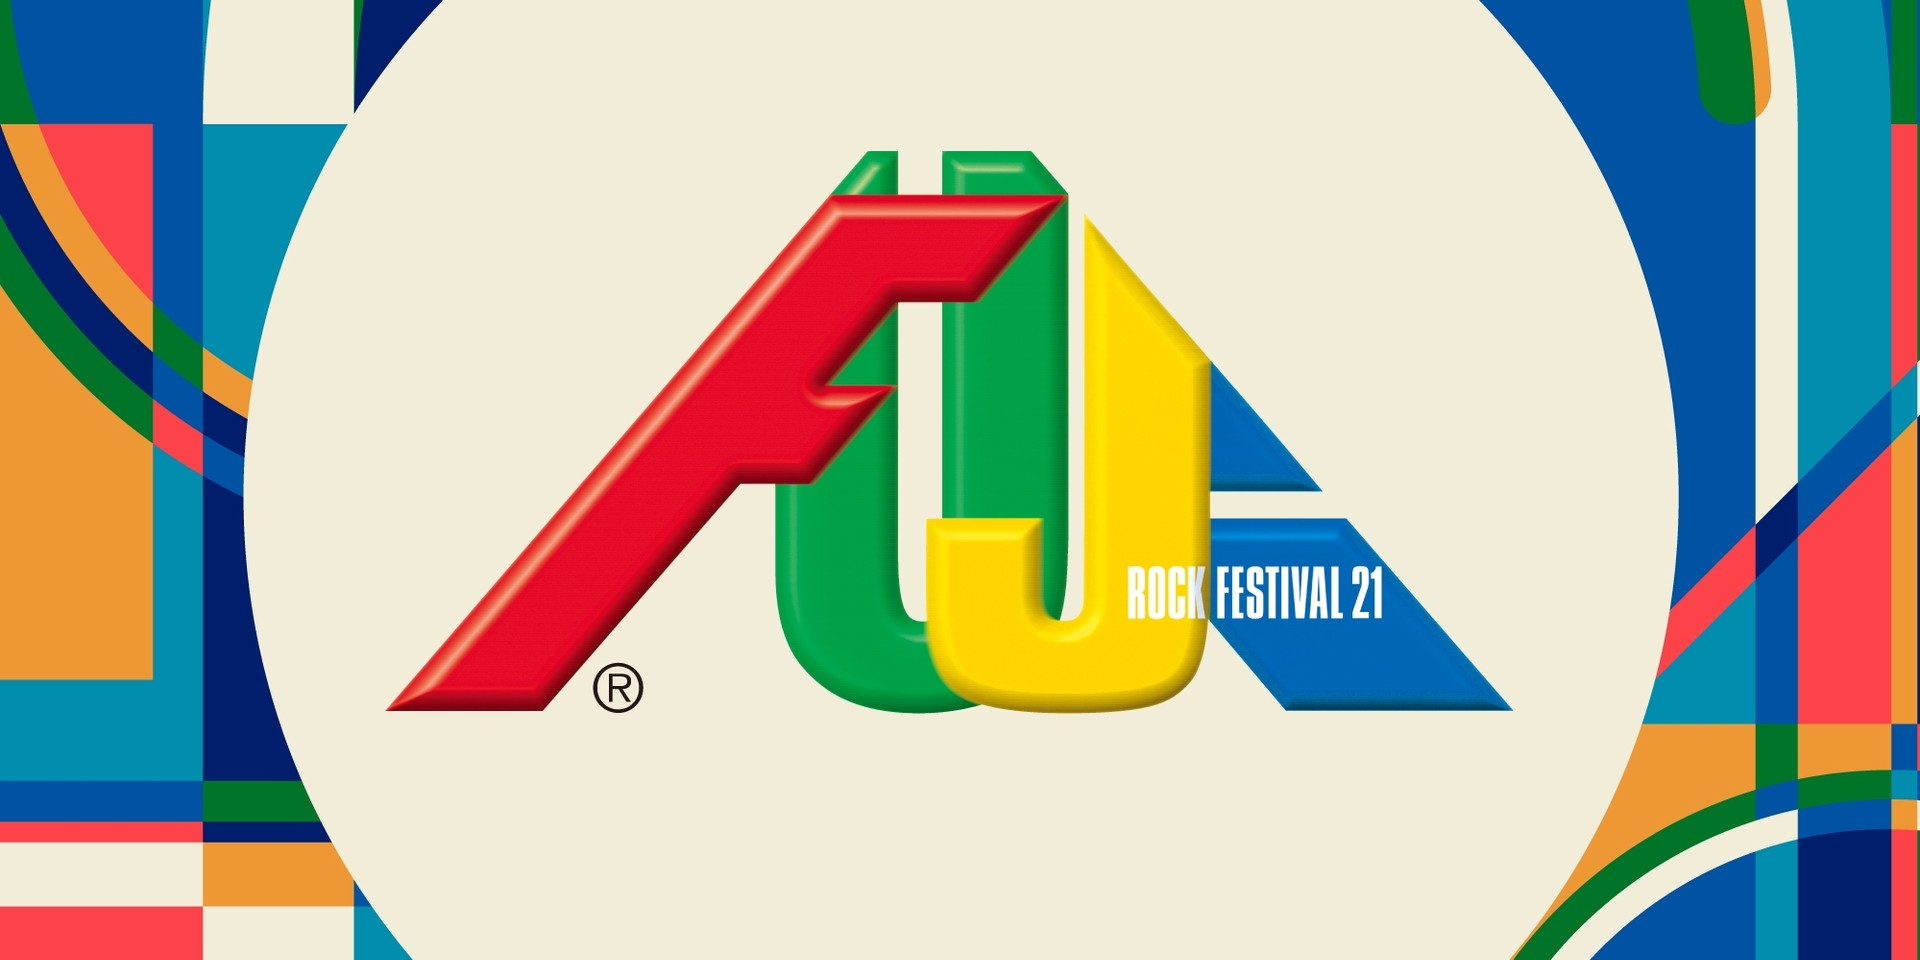 Here's how you can watch Fuji Rock Festival '21 online